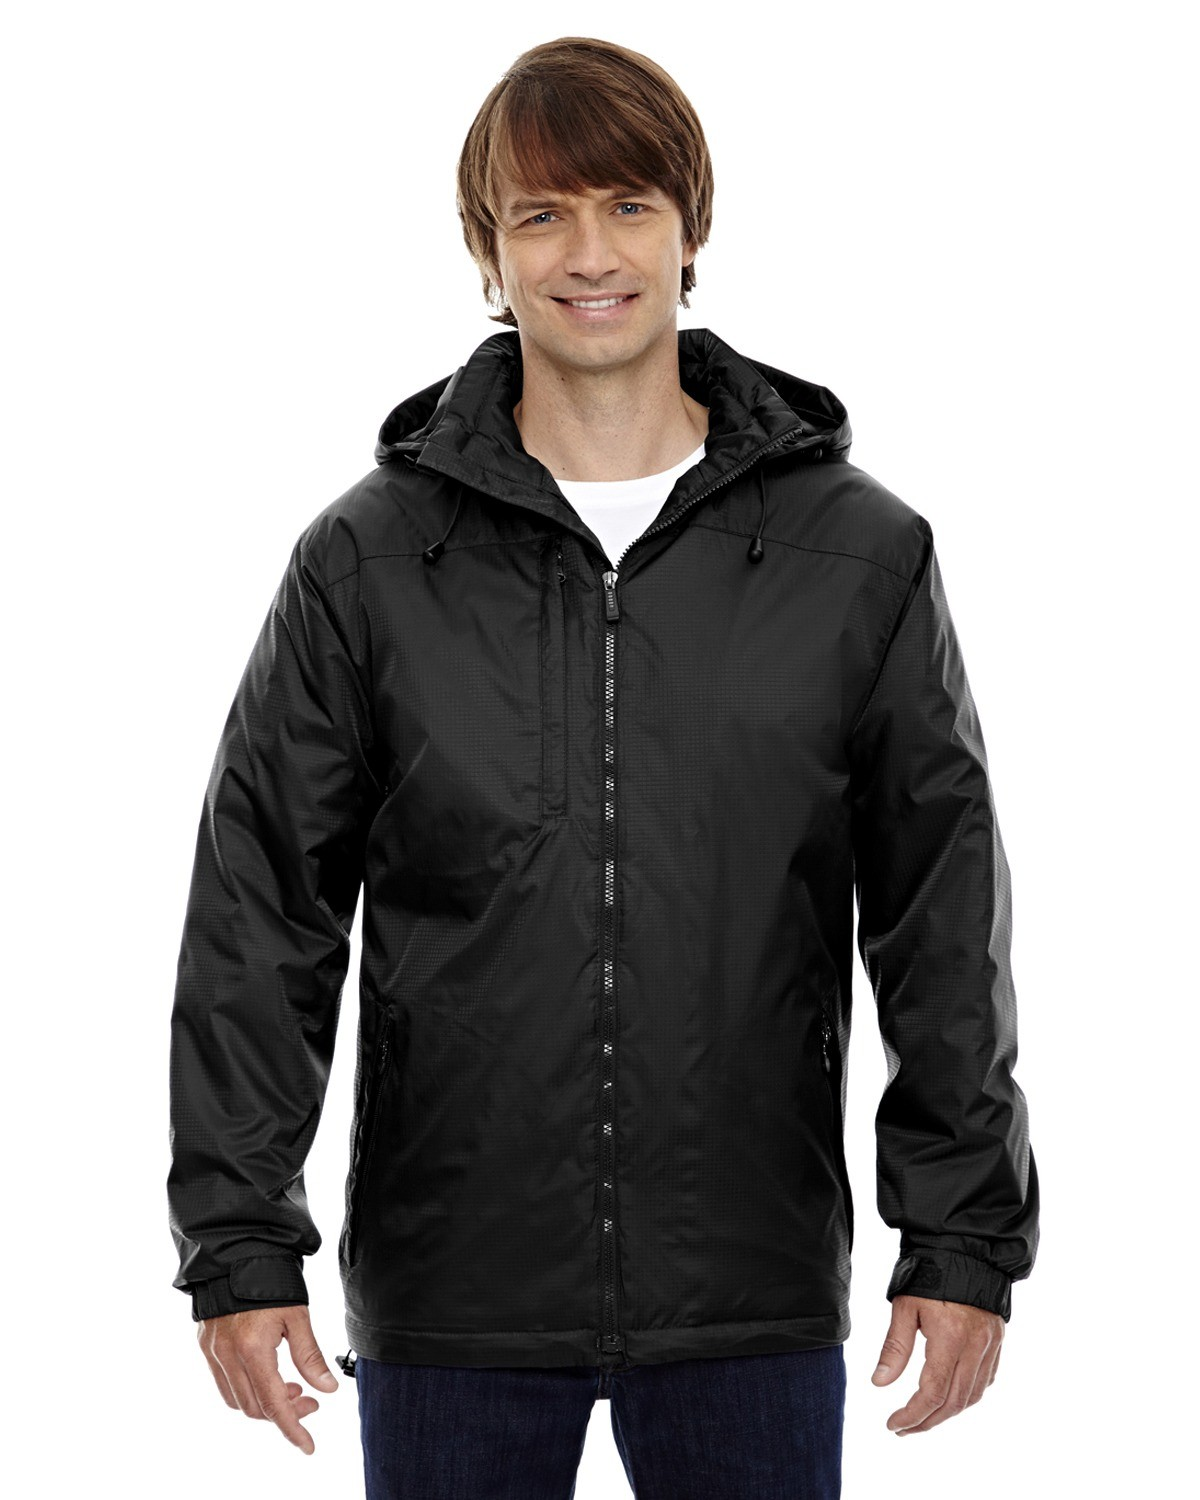 Men's Insulated Jacket